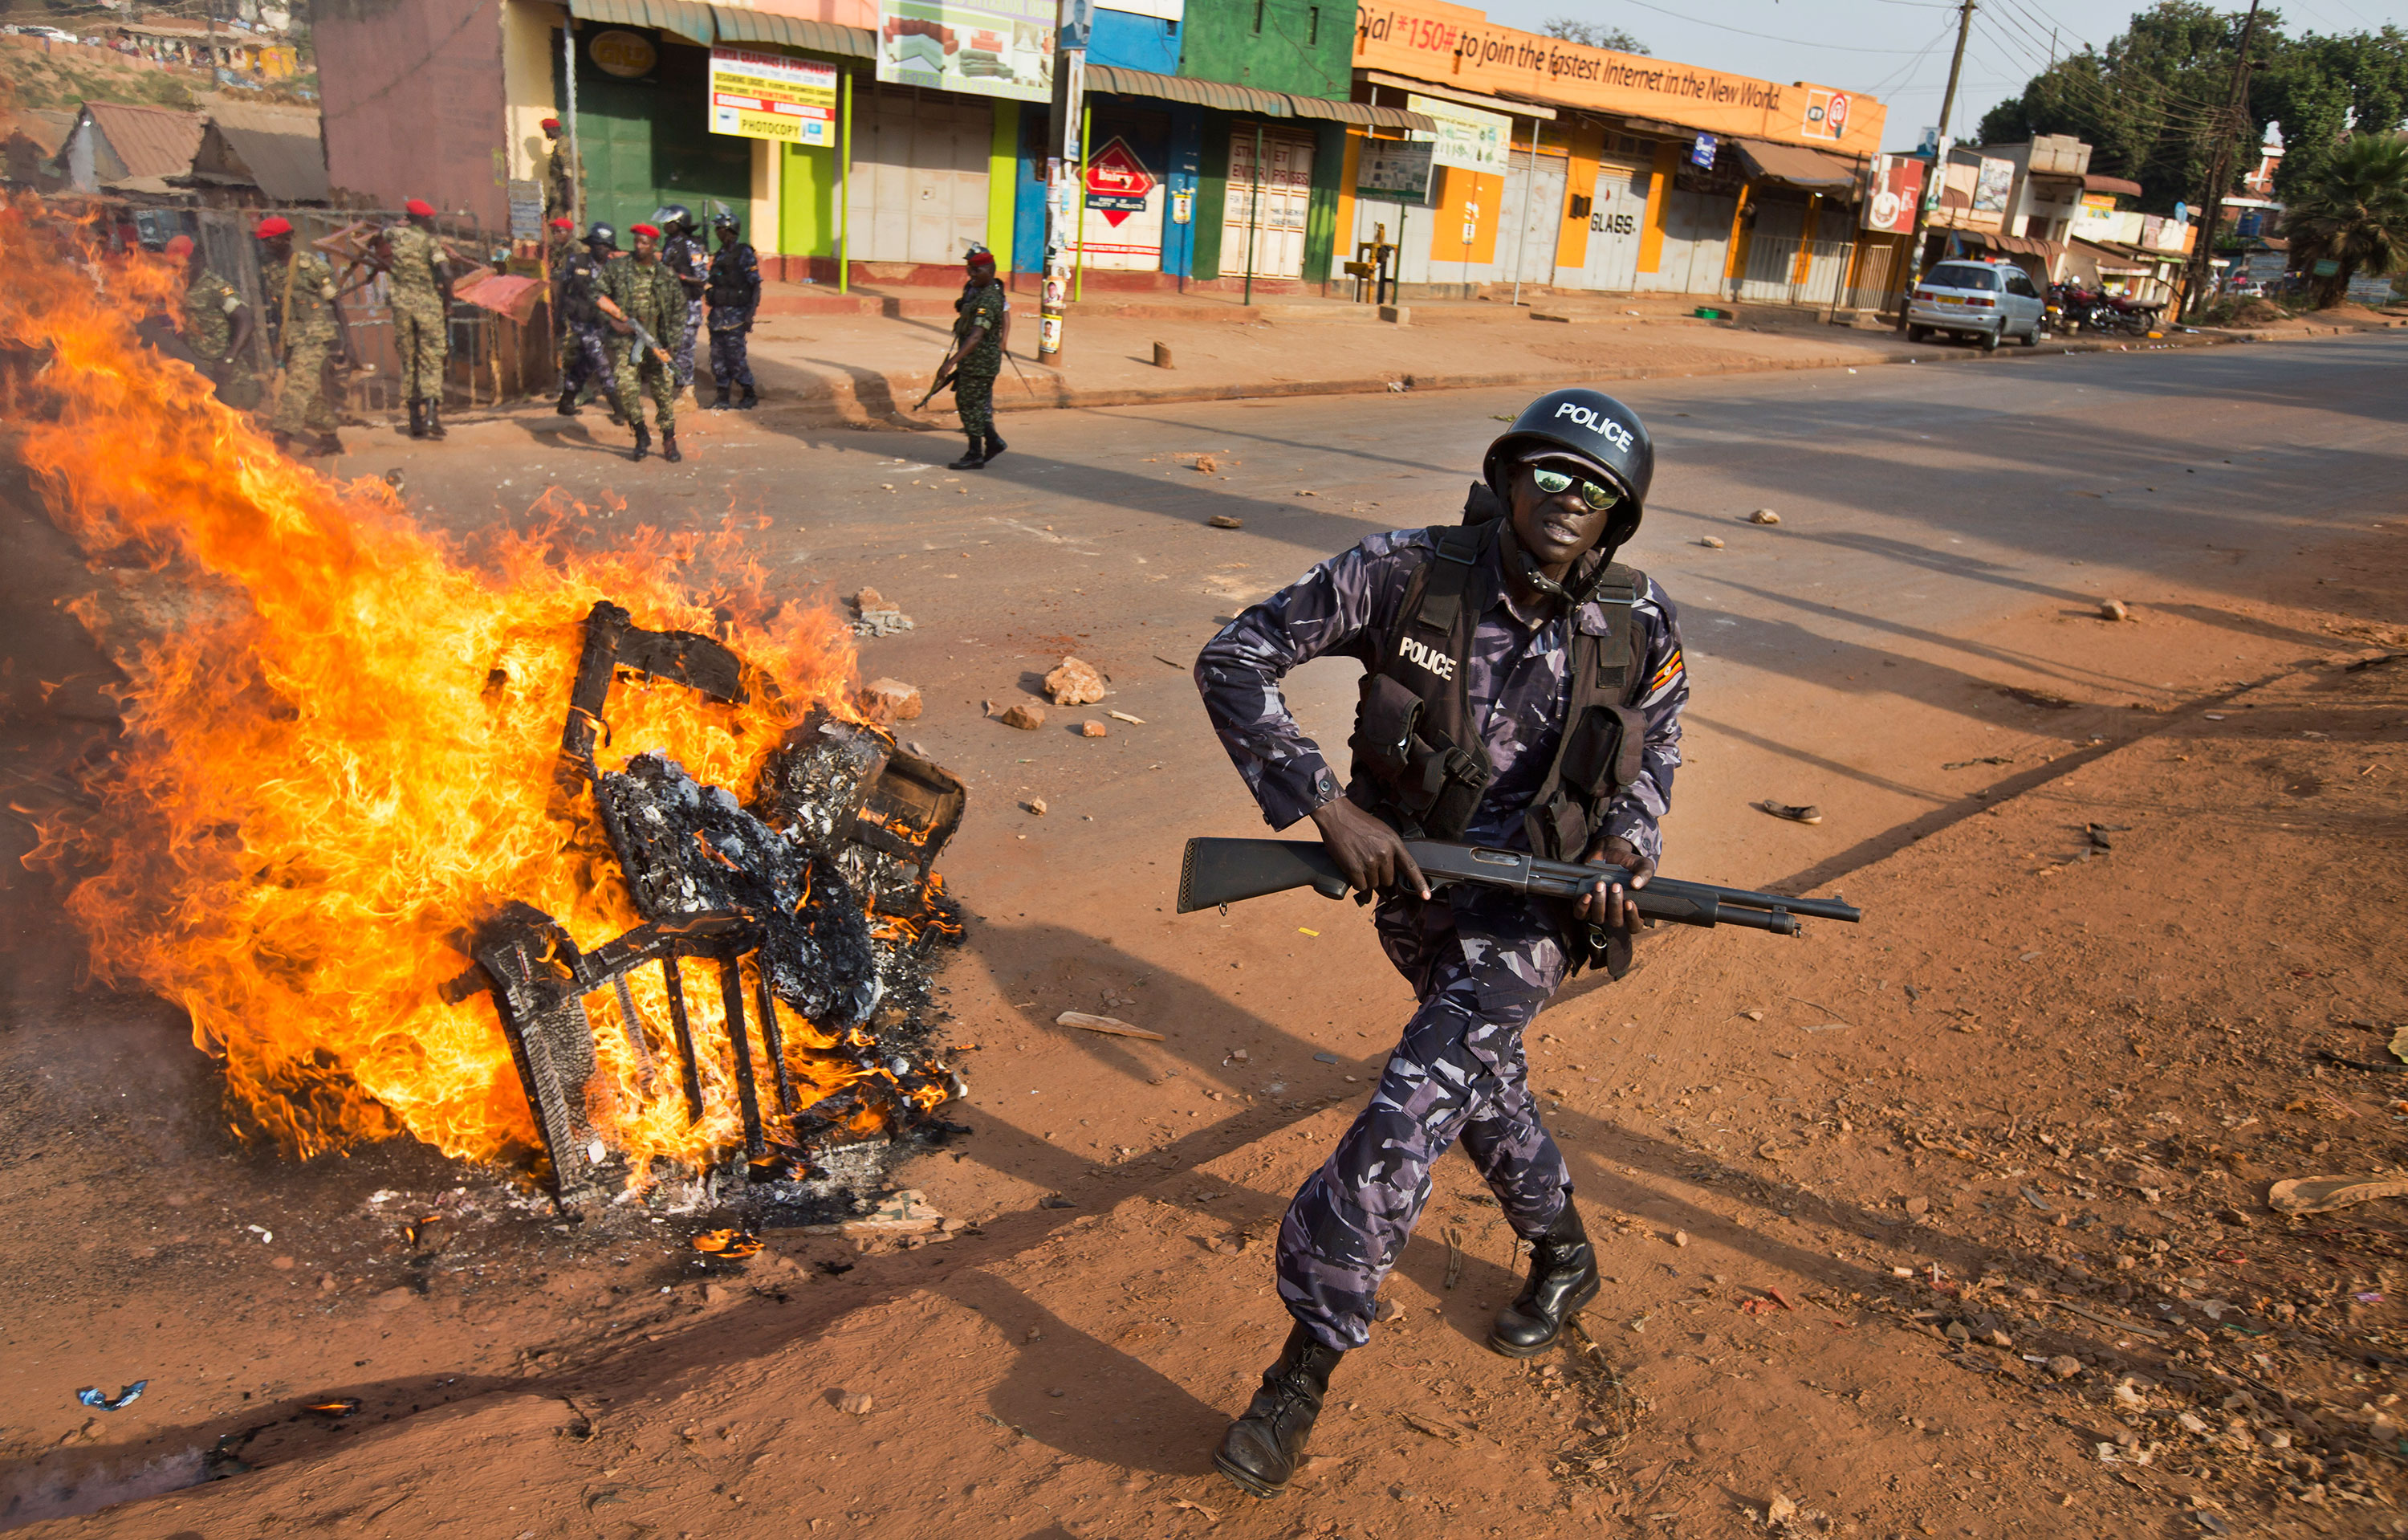 Police spokesman Fred Enanga confirmed on Tuesday that one civilian was killed in the scuffles and that police fired tear gas and rubber bullets to disperse crowds. [Ben Curtis/AP]